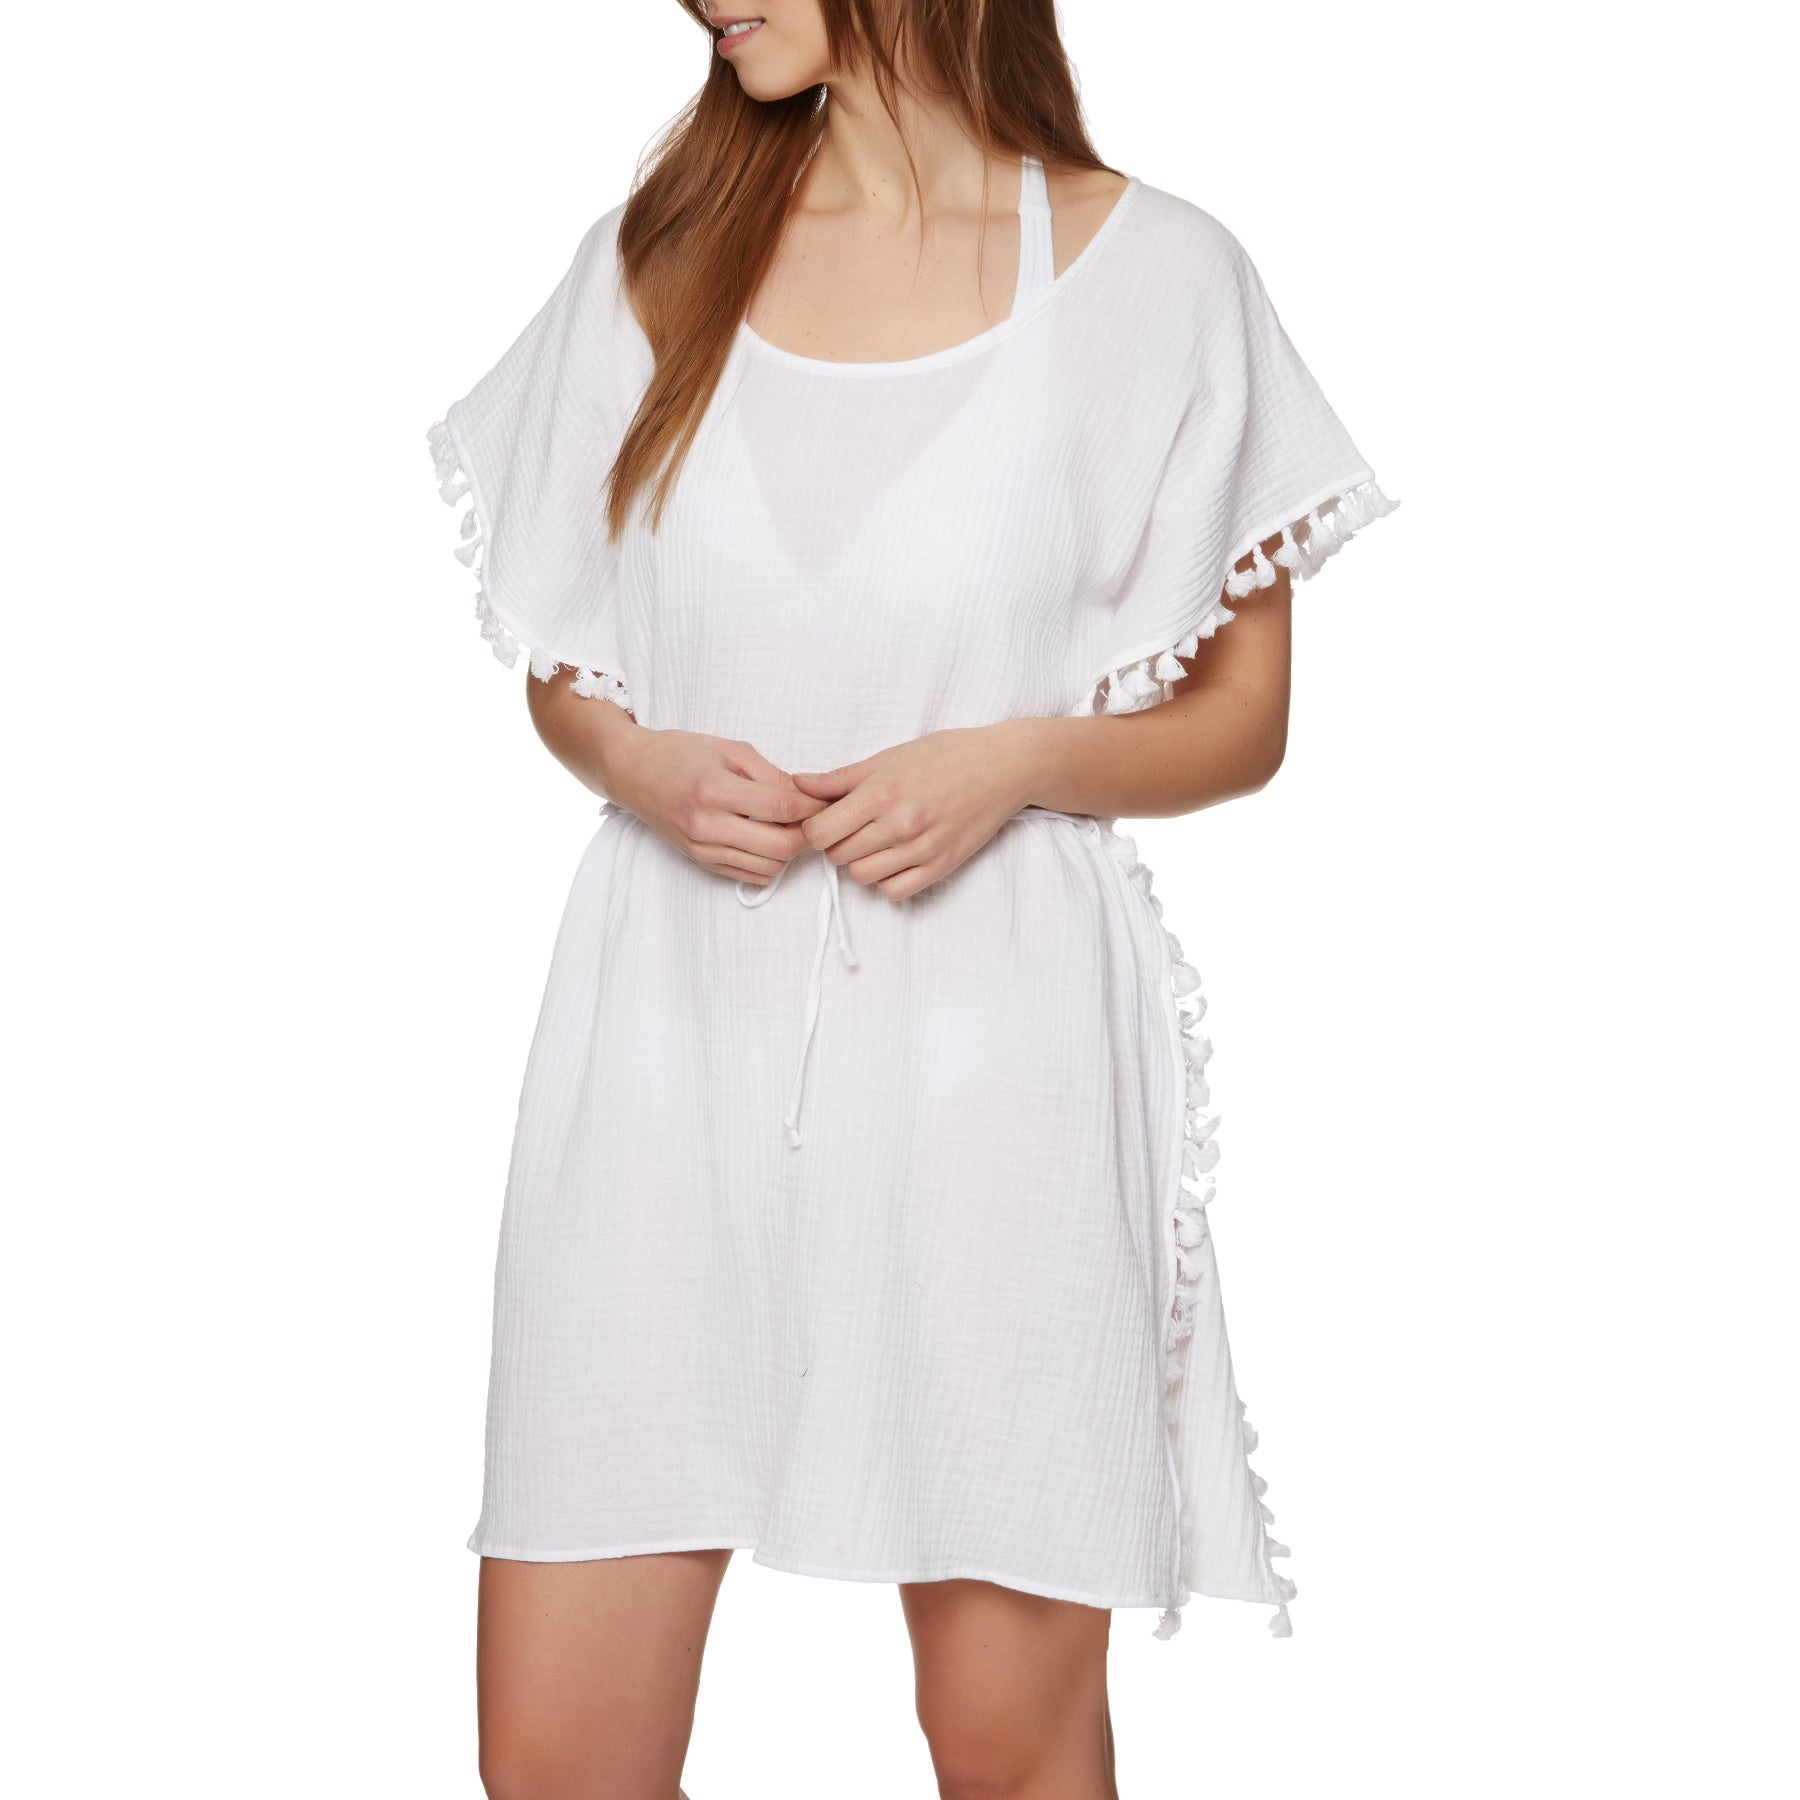 Nine Islands Tassel Overswim Dress - White